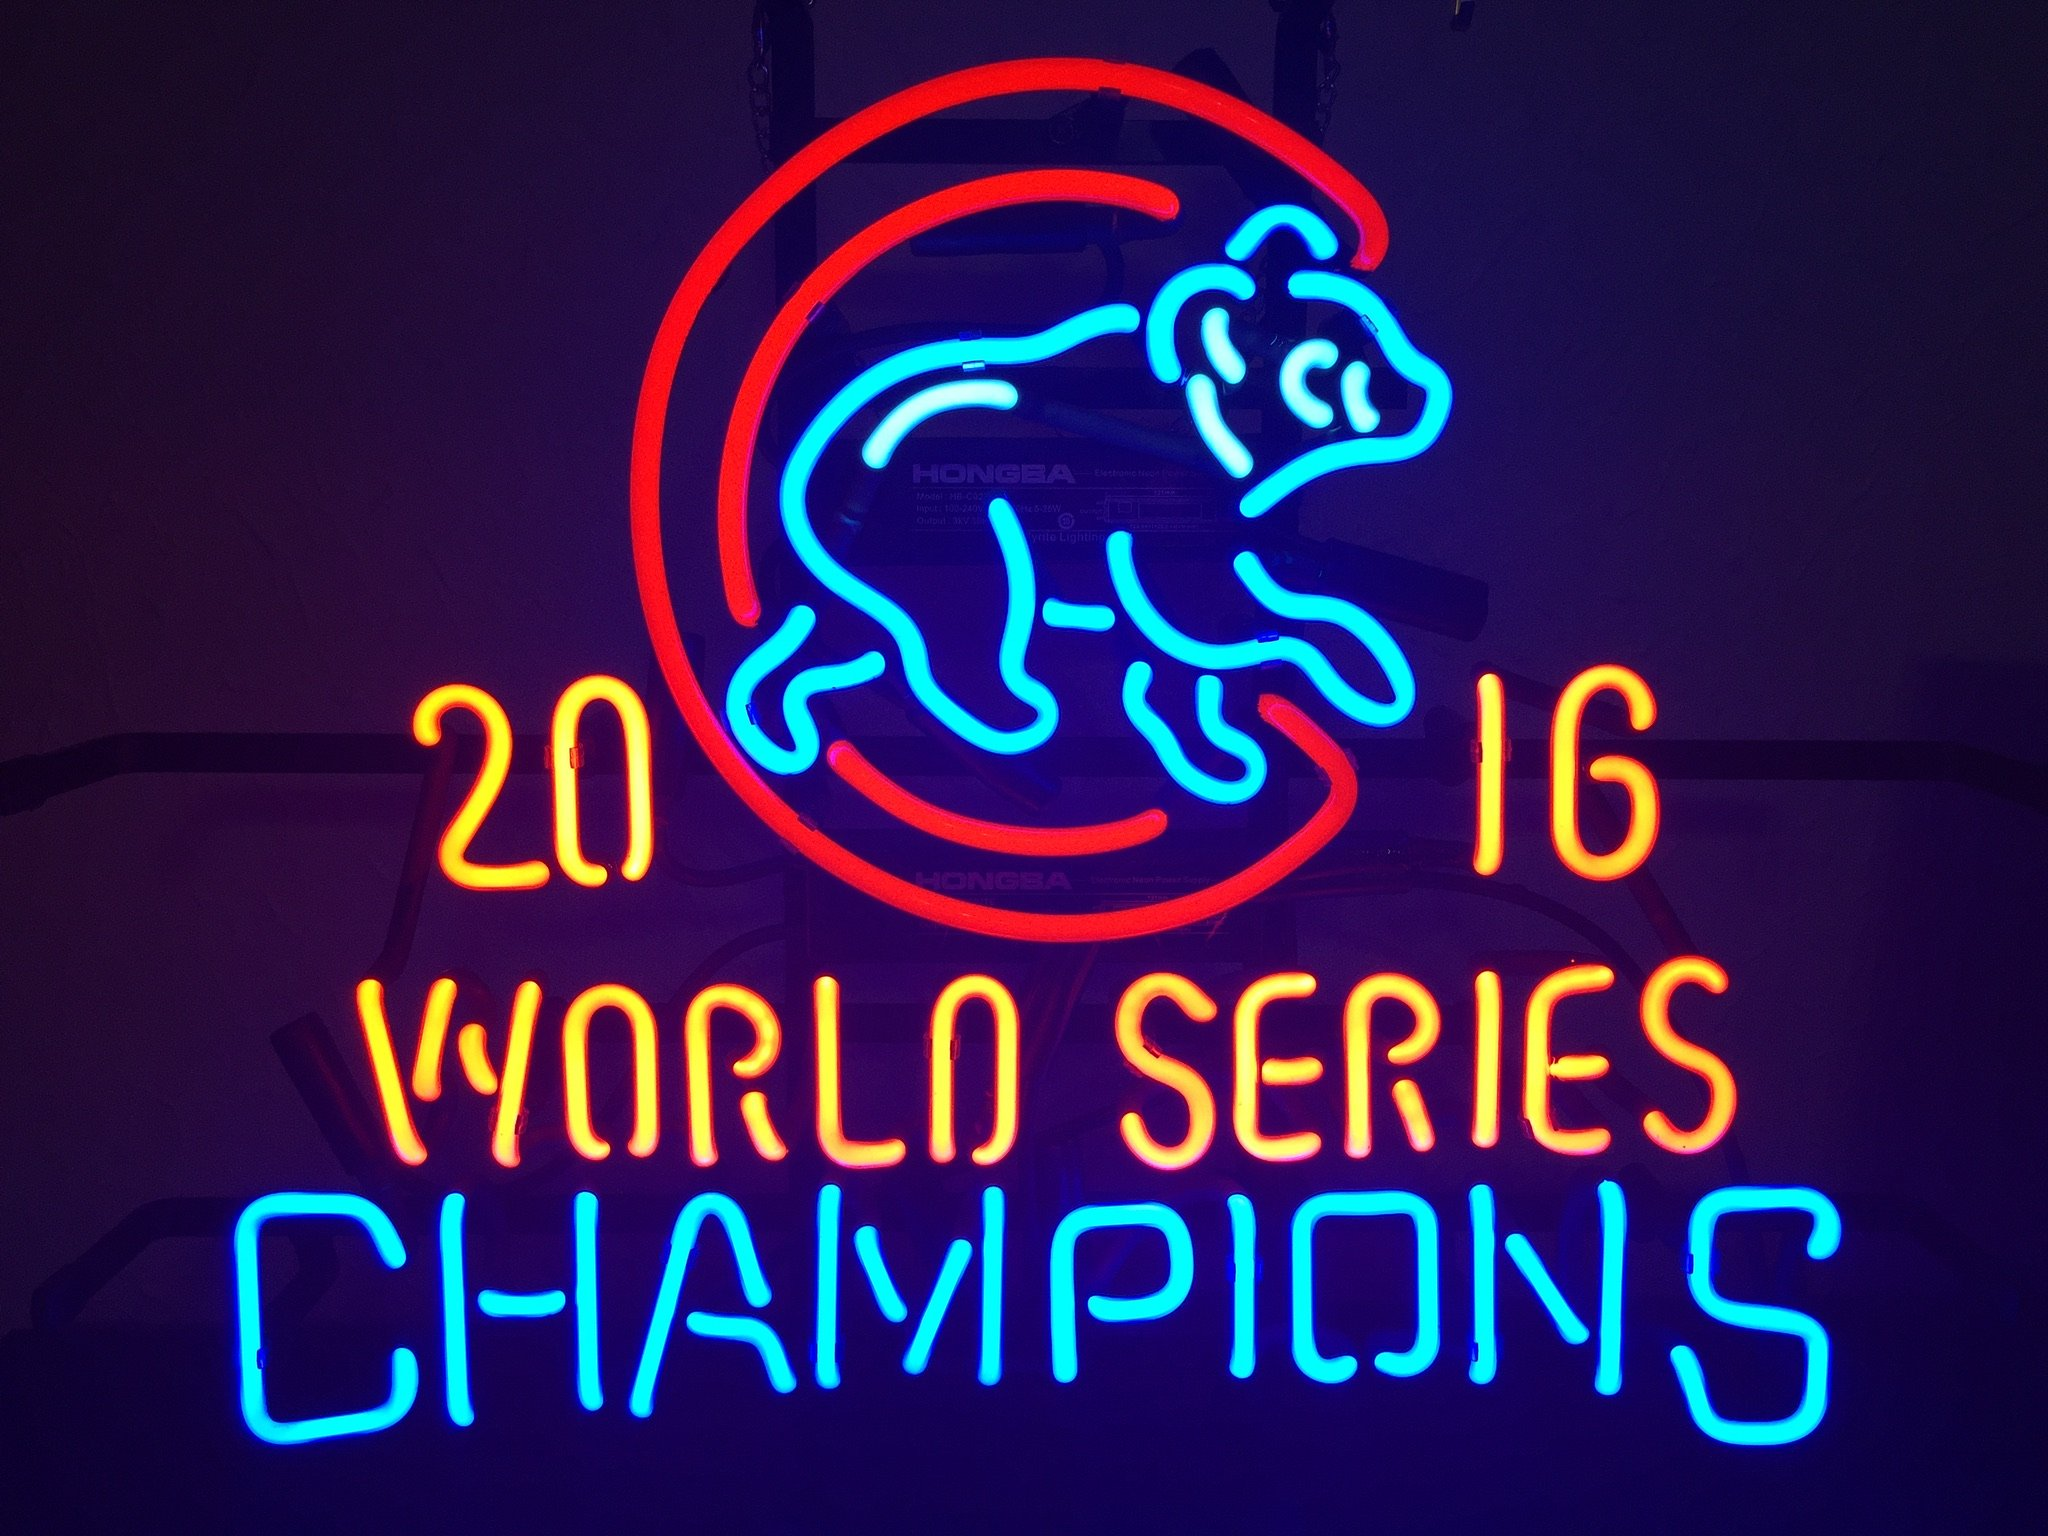 Urby™ 19''x15'' Chicago Sports Unions Cub 2016 World Series Champions Neon Sign (MultipleSizes) Beer Bar Pub Neon Light Handicraft U126